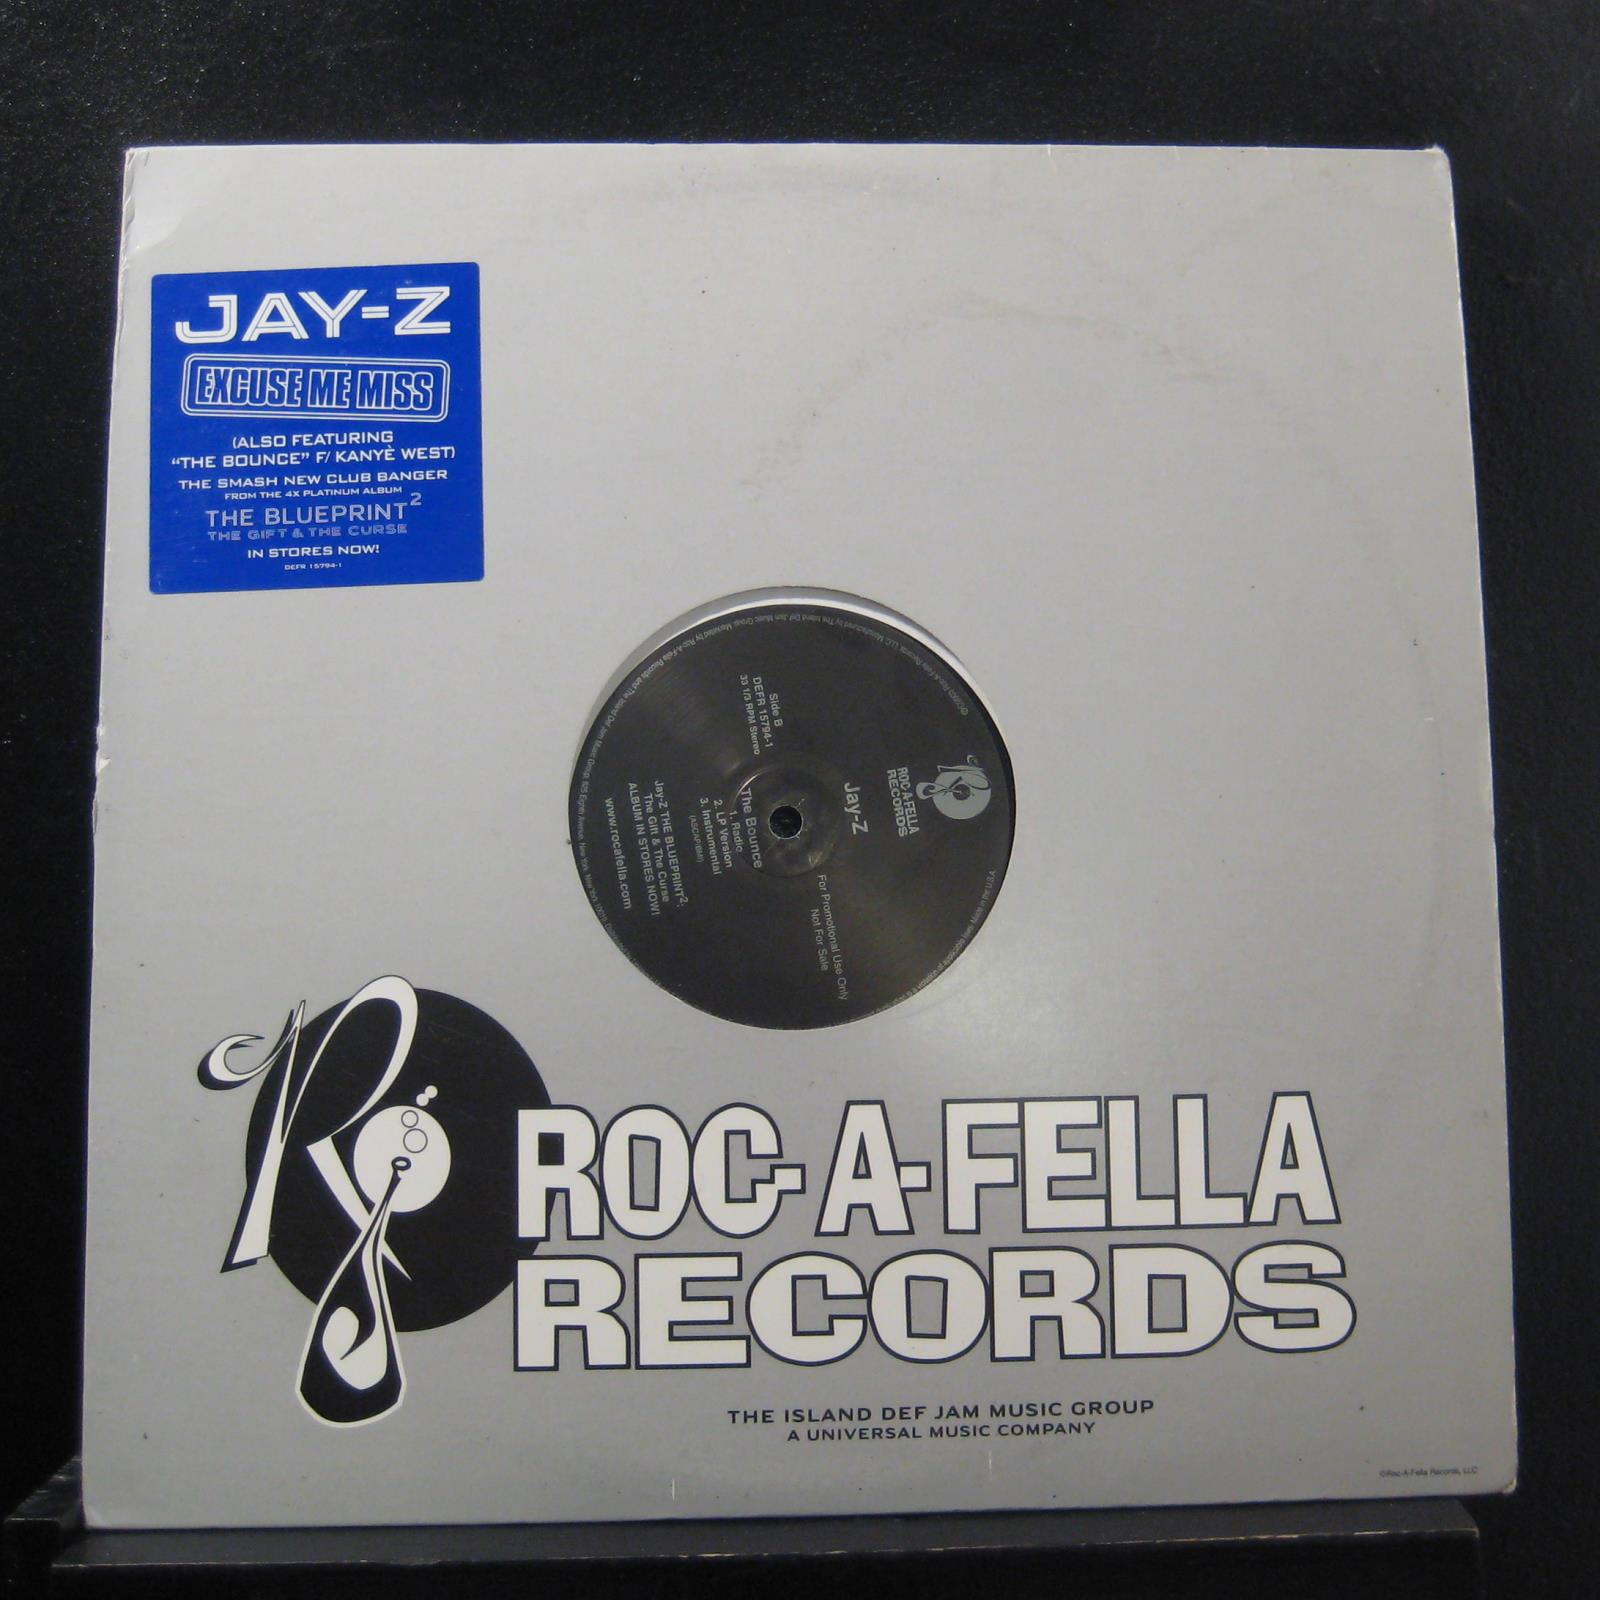 Jay z excuse me miss the bounce 12 vg defr 15794 1 promo vinyl actual item pictured open image in new tab for full resolution malvernweather Gallery